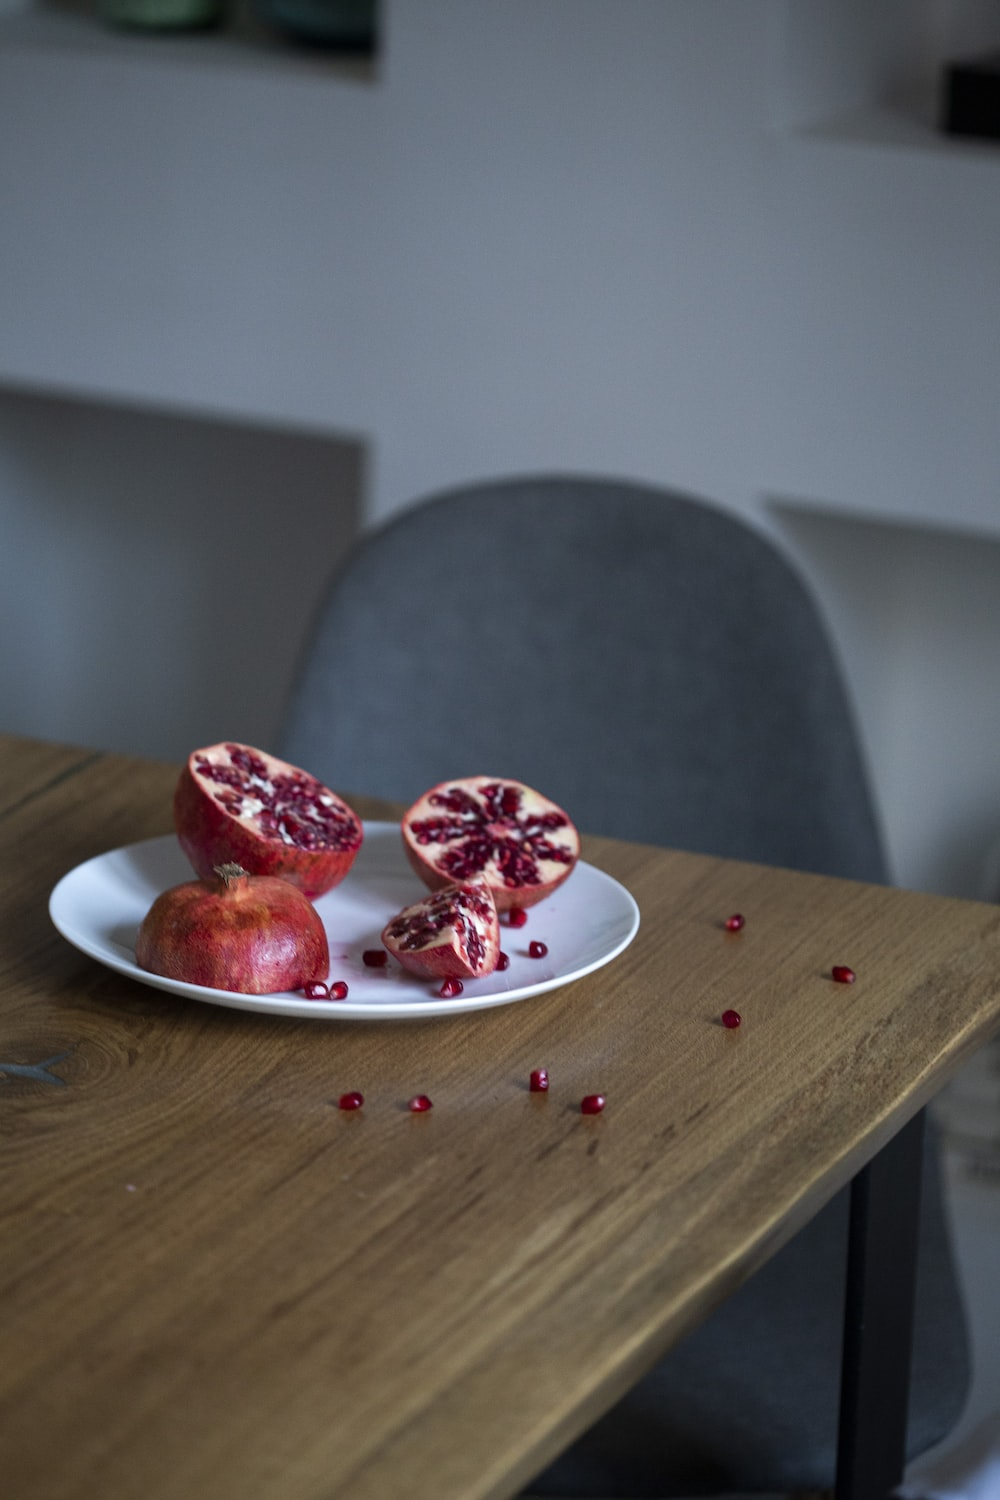 pomegranate fruit sliced into half on white plate